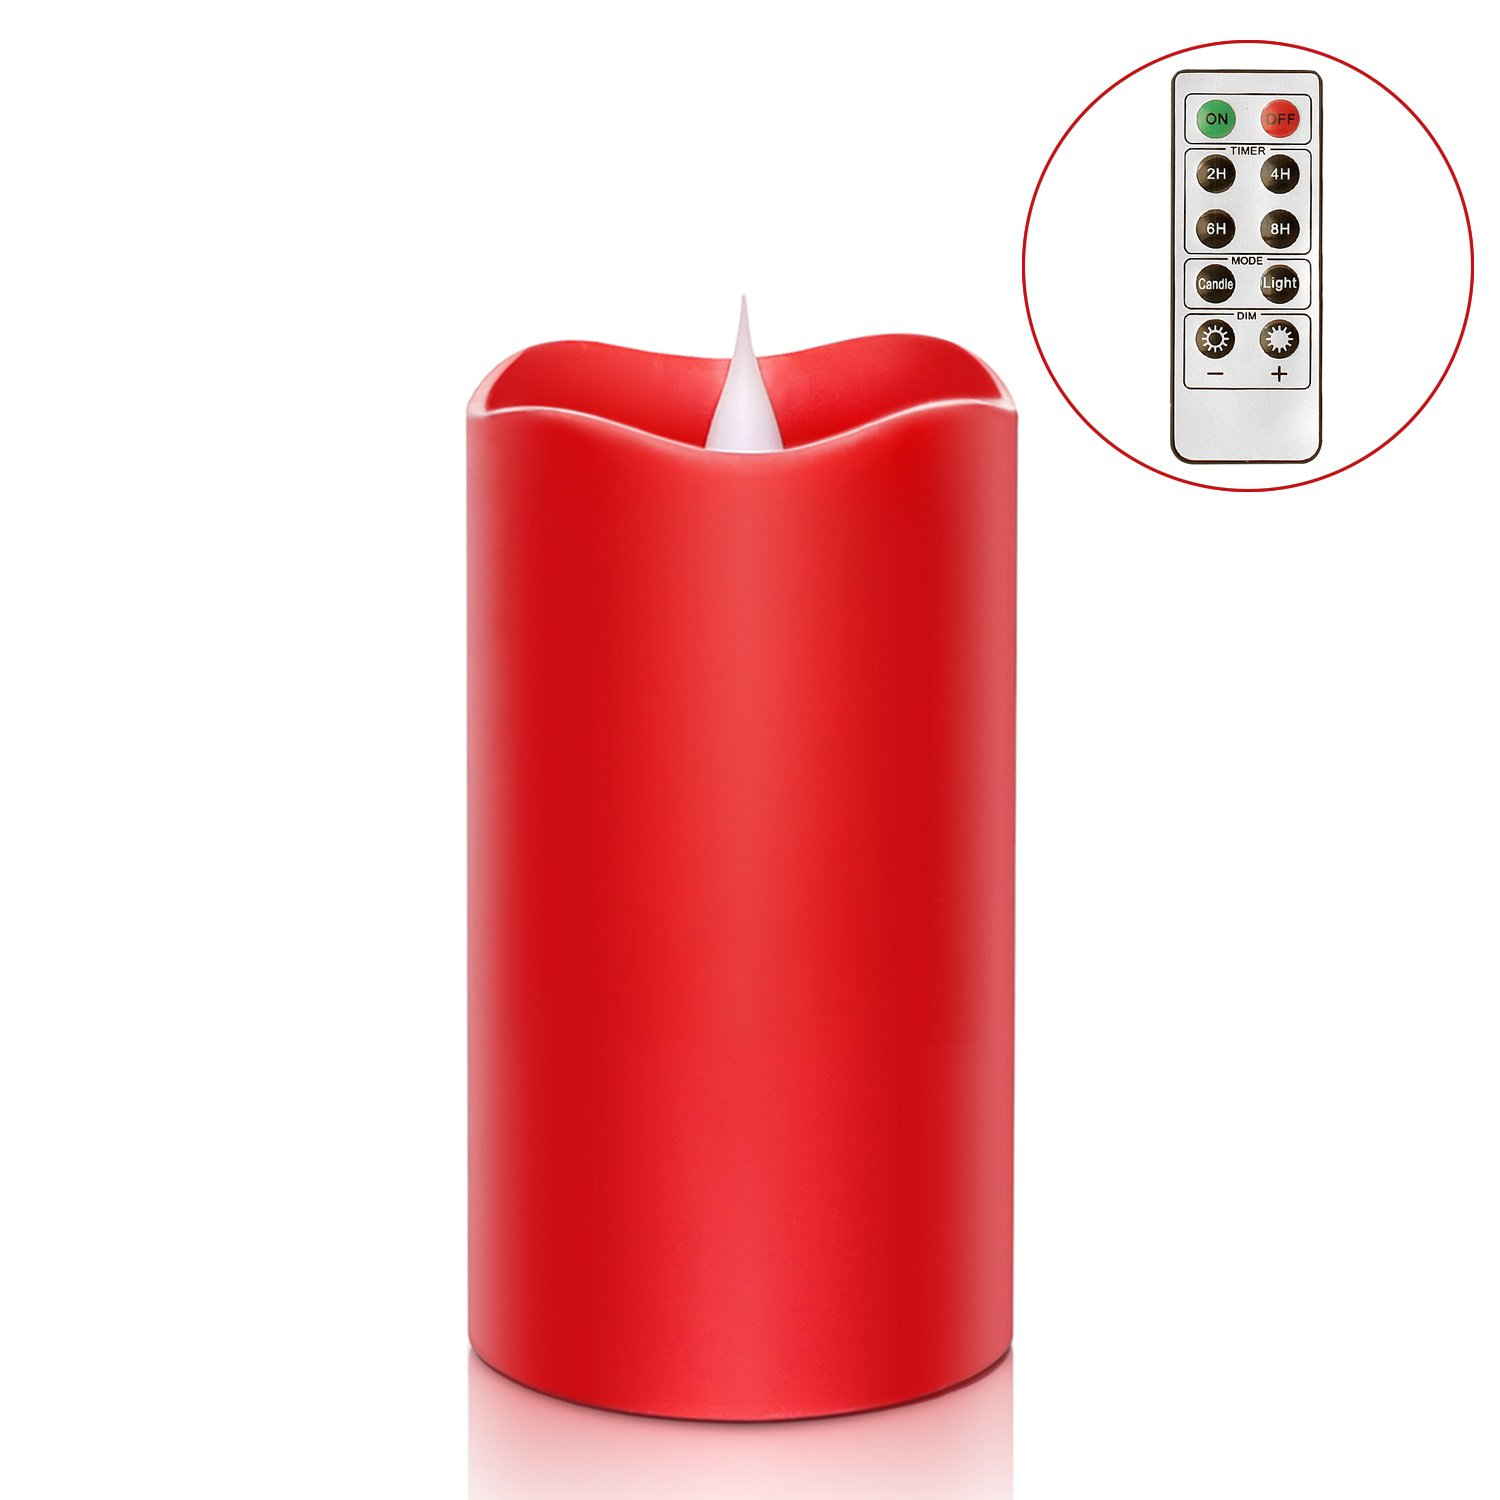 3D Moving Flame Led Candle with Timer Battery Operated Candle with Remote Control for Christmas Decoration 3x5 Inch Red